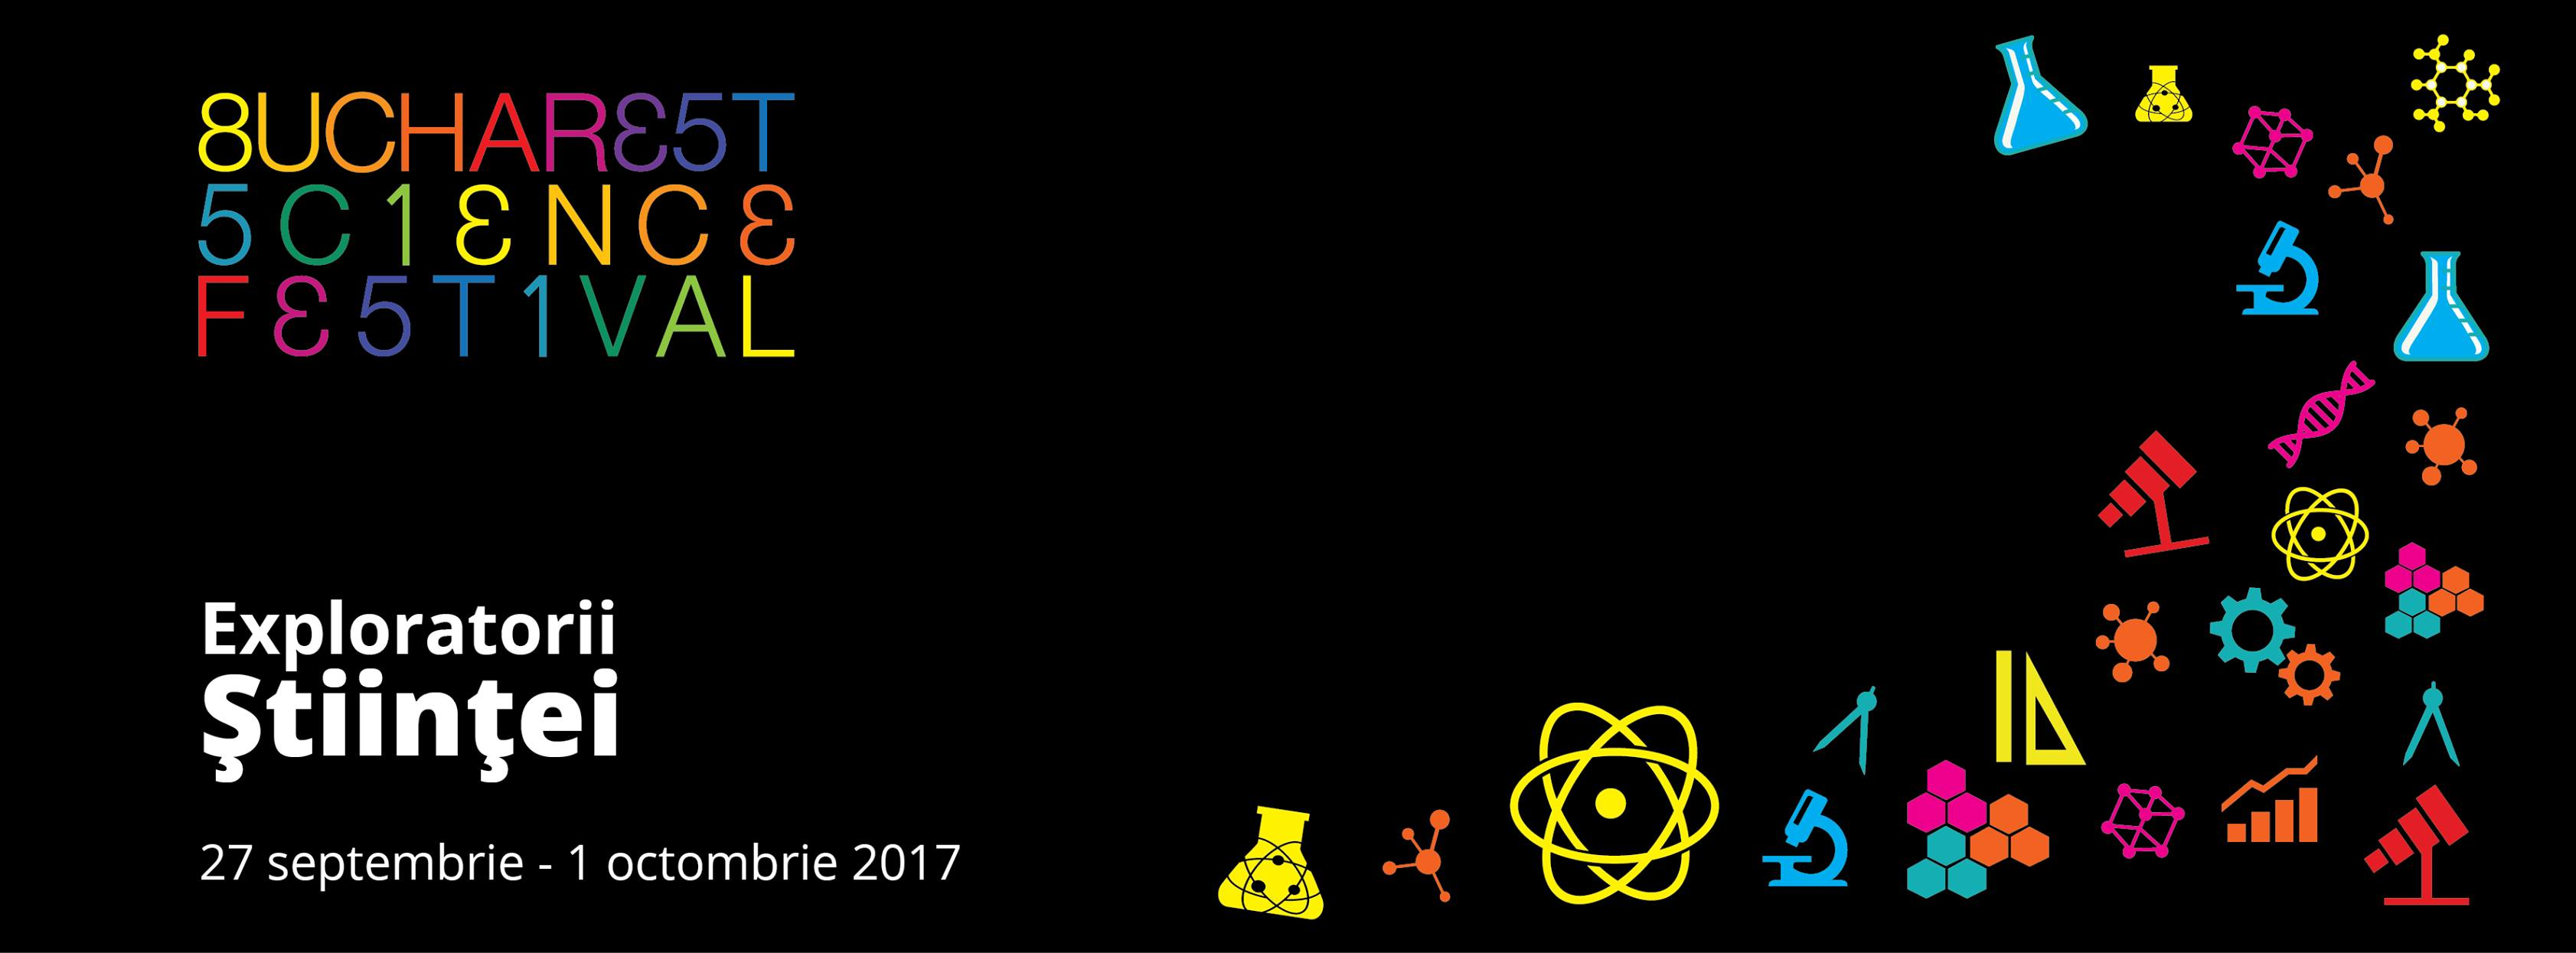 Bucharest Science Festival 2017